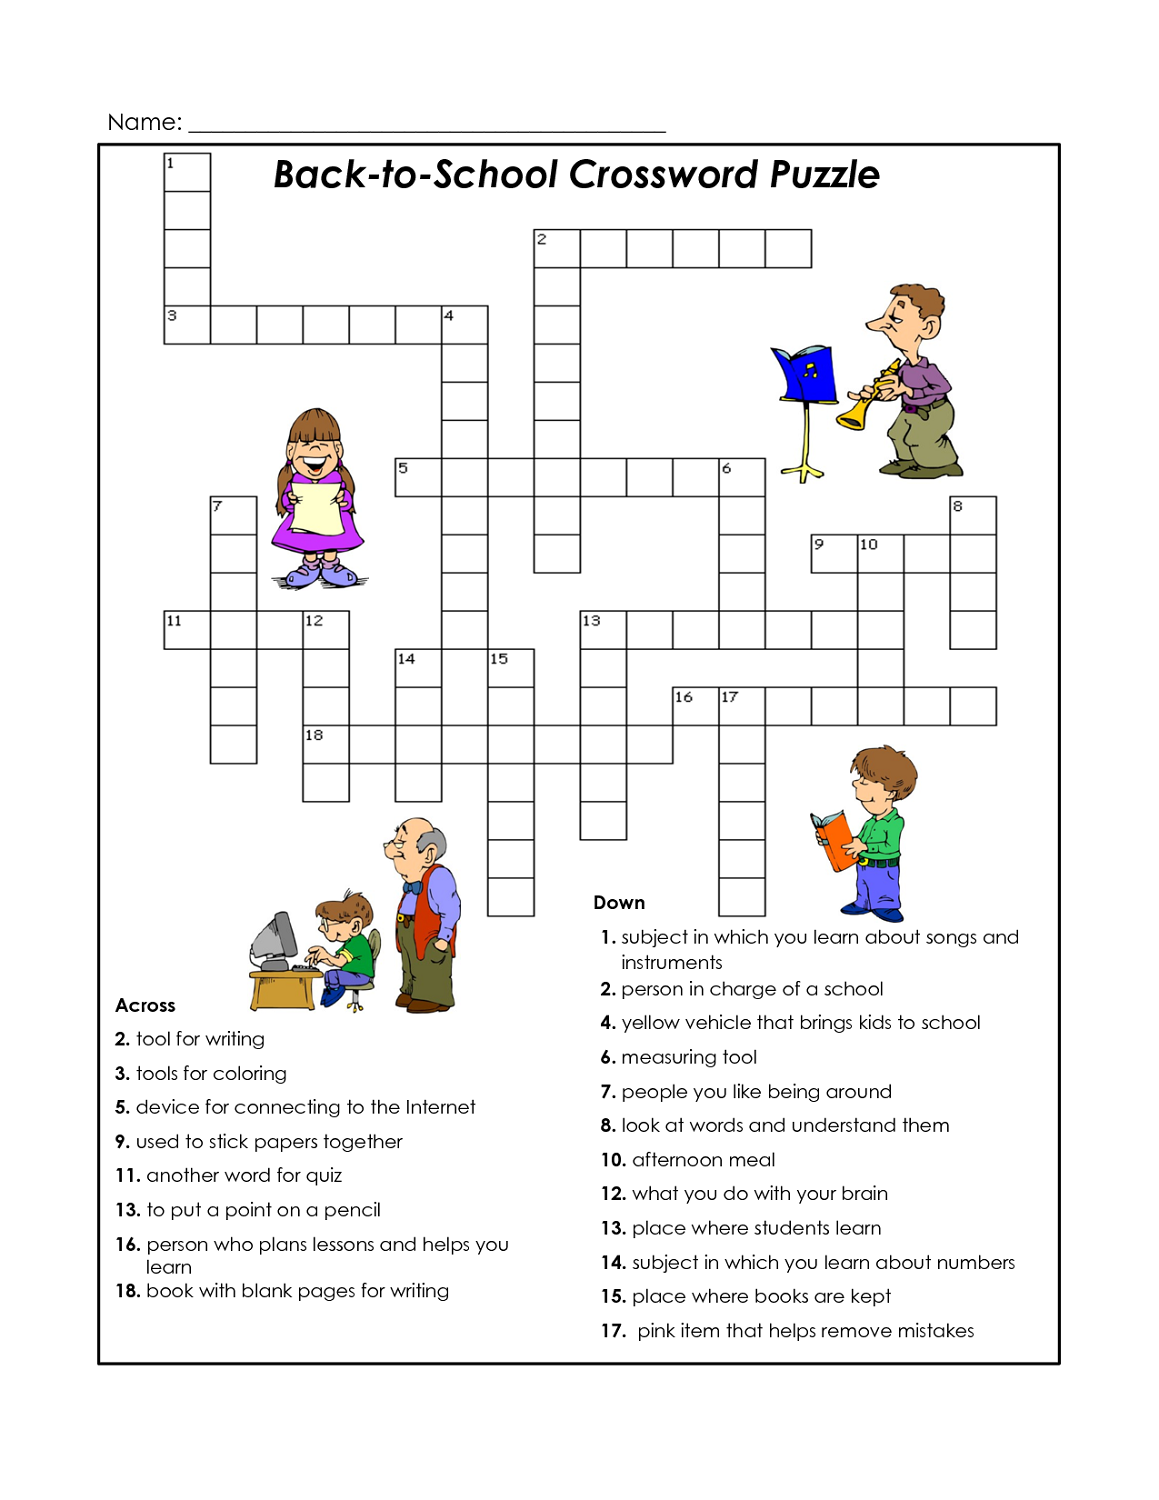 cross word puzzles for kids school